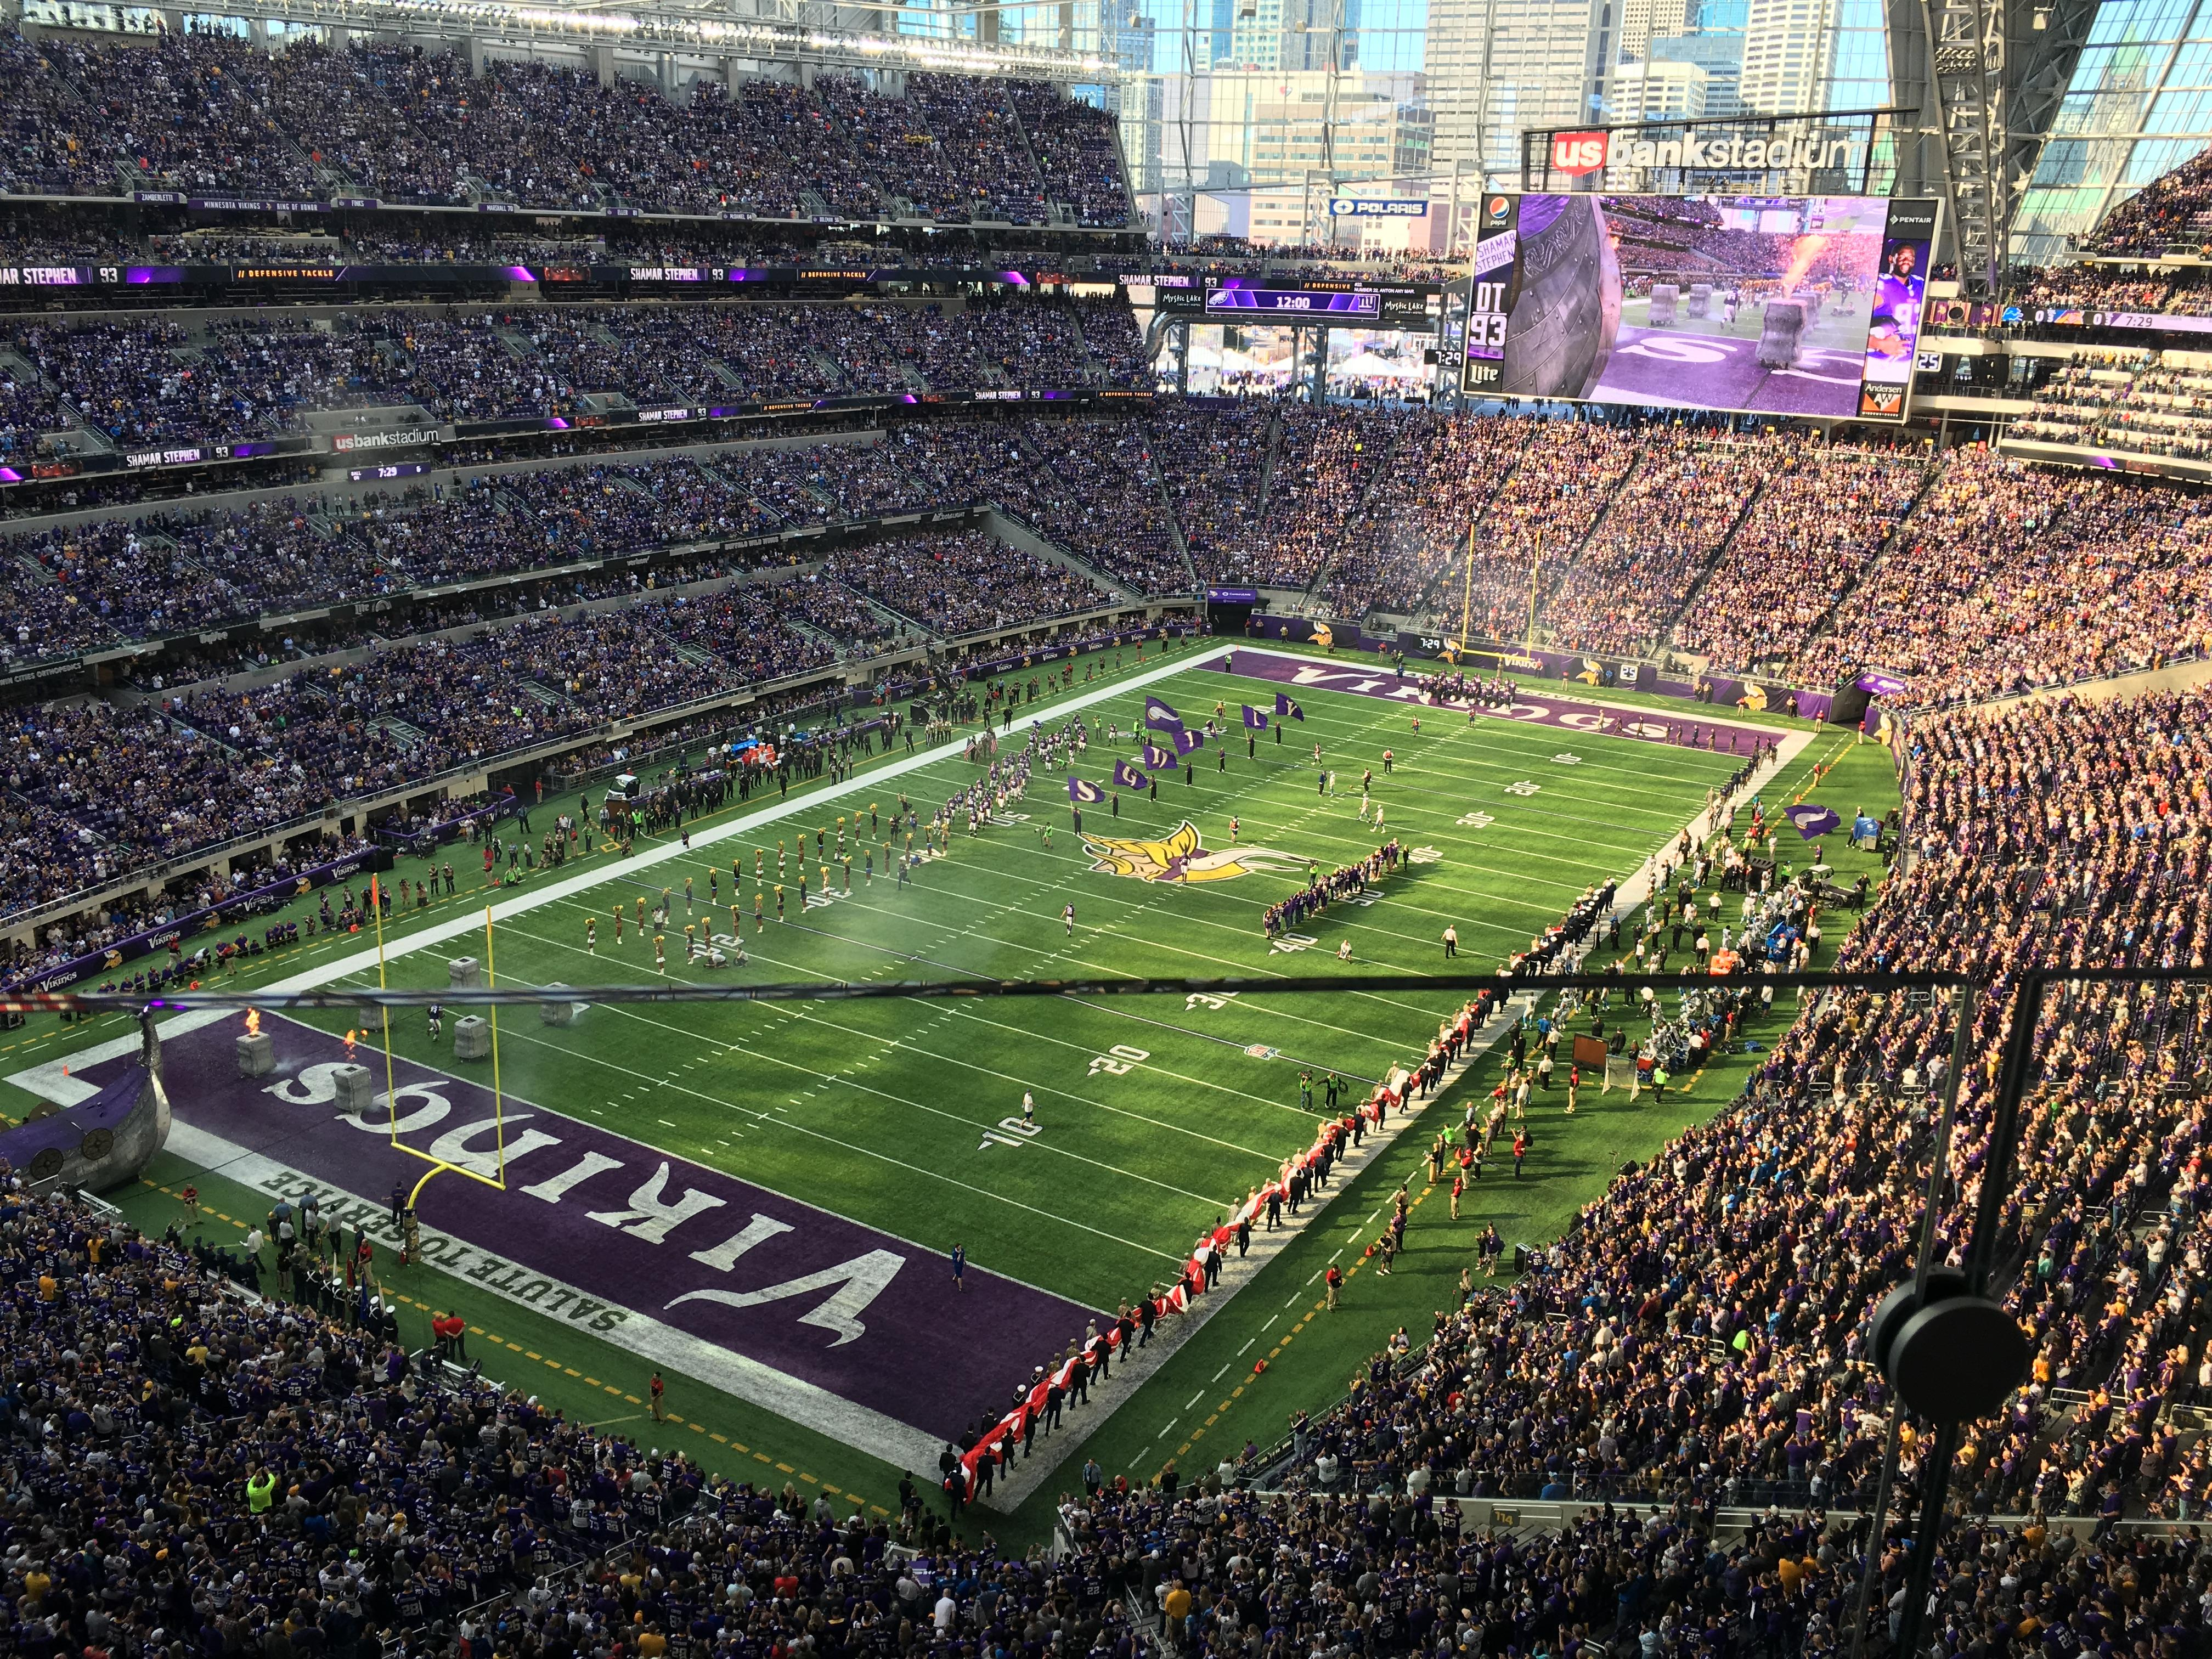 U.S. Bank Stadium Section 321 Row 1 Seat 8